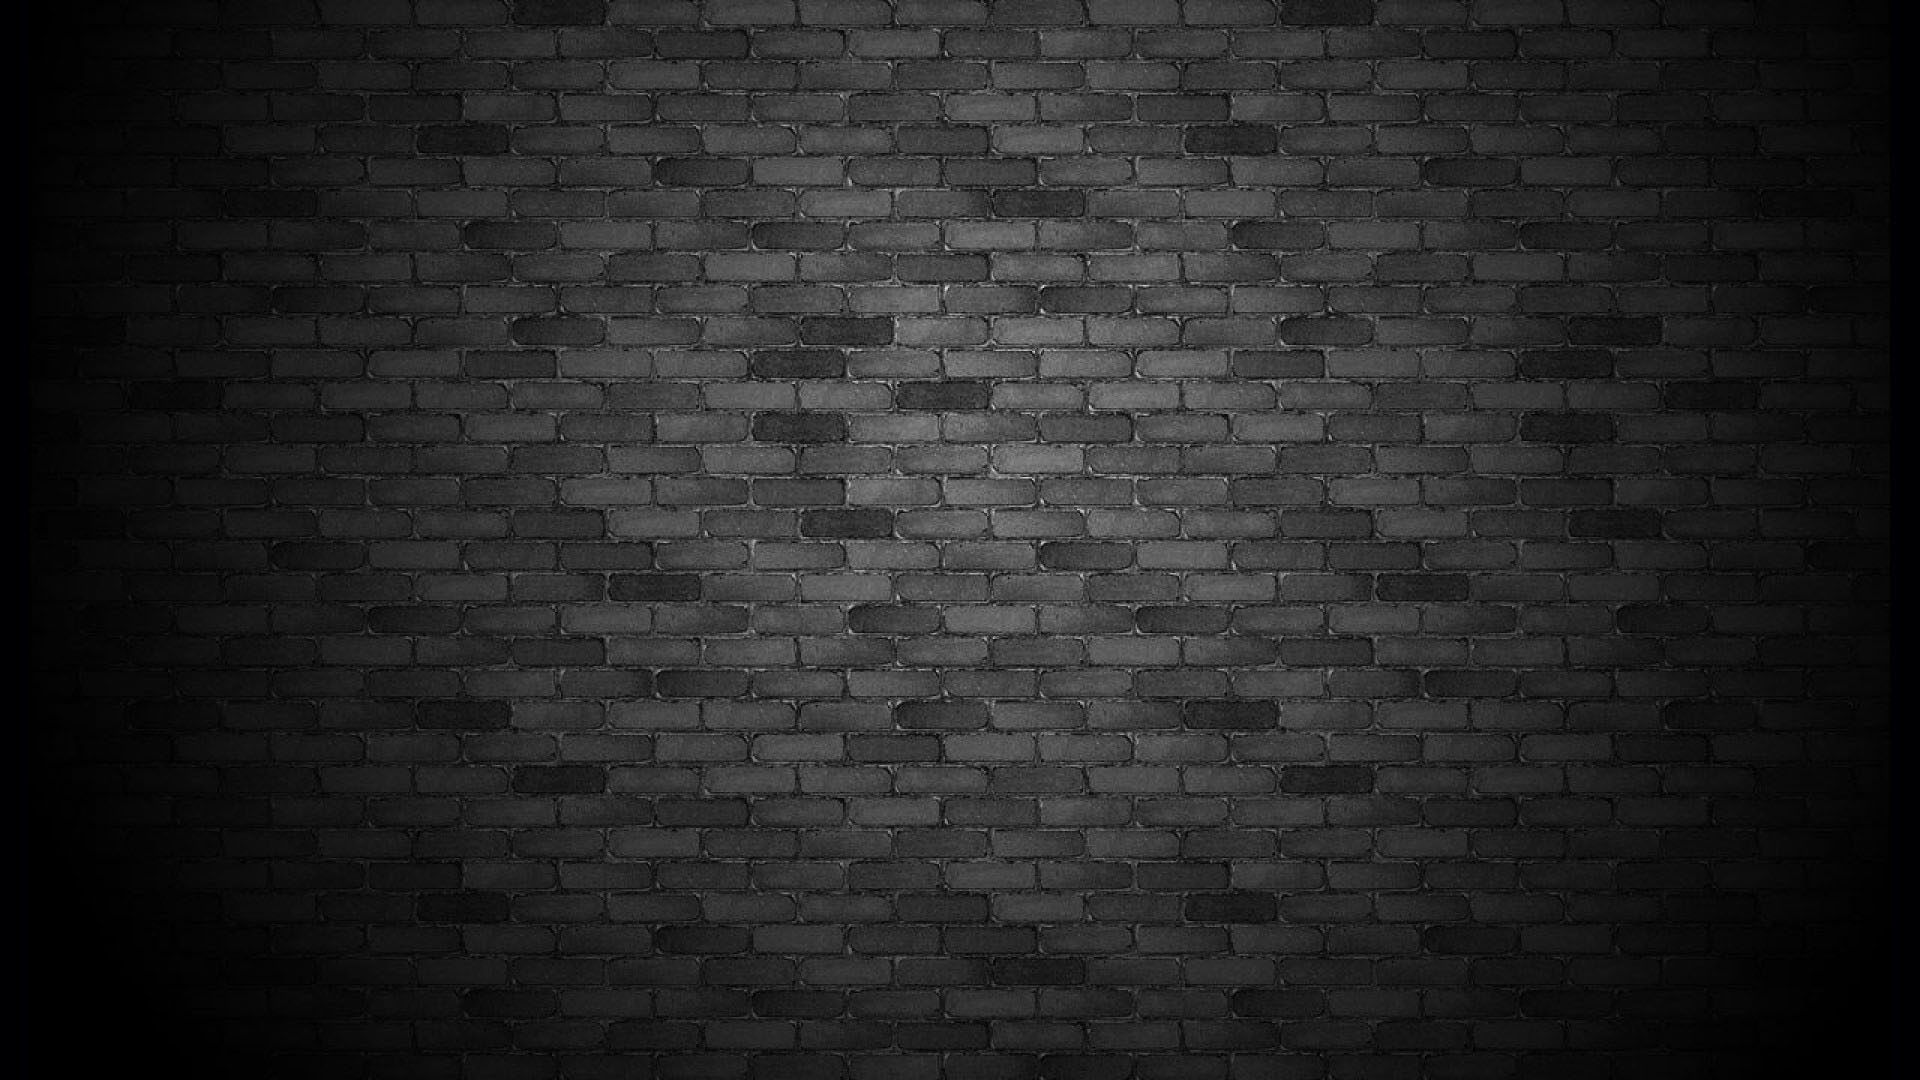 Home Design : Brick Wall Black And White Wallpaper Patio Closet